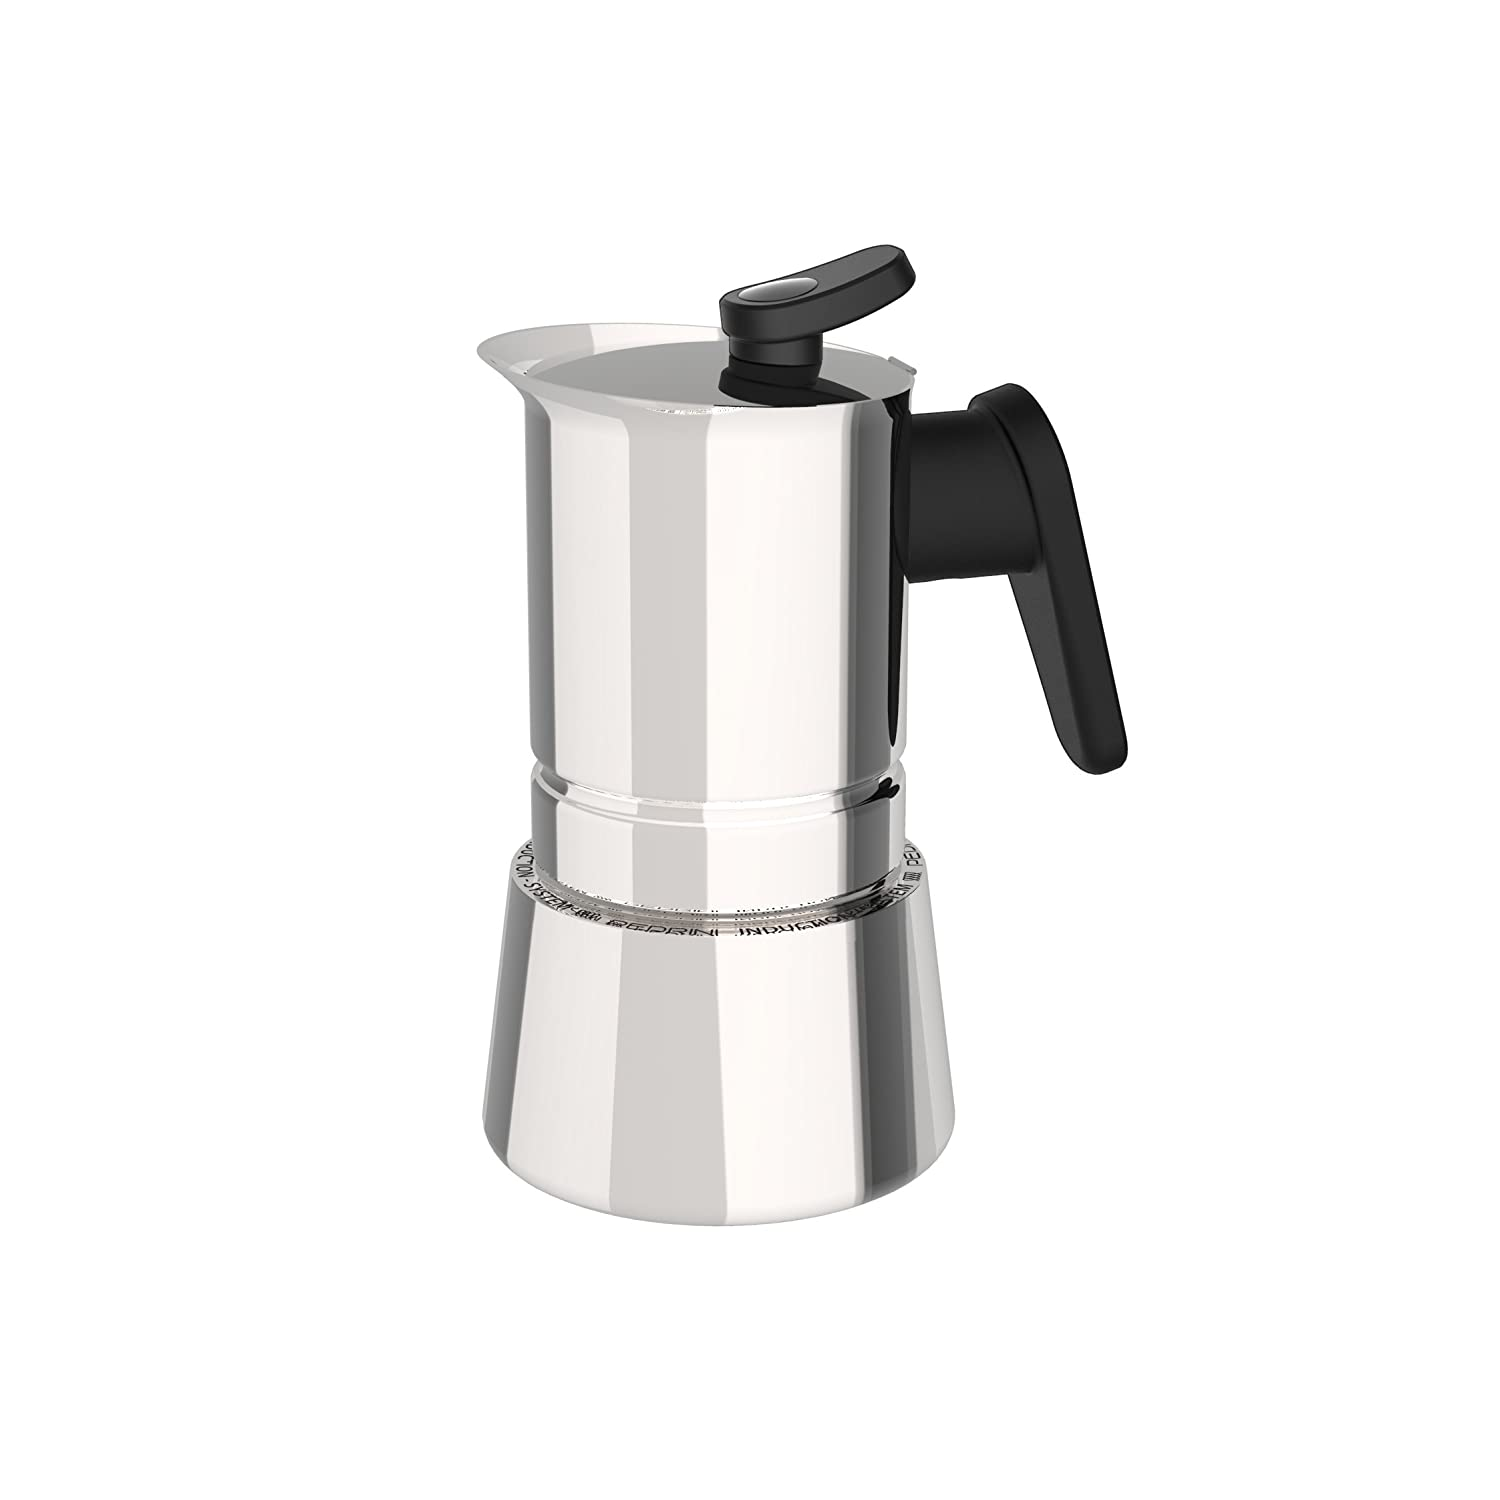 Pedrini: 2 Cups Espresso Coffee, Steel 02CF036